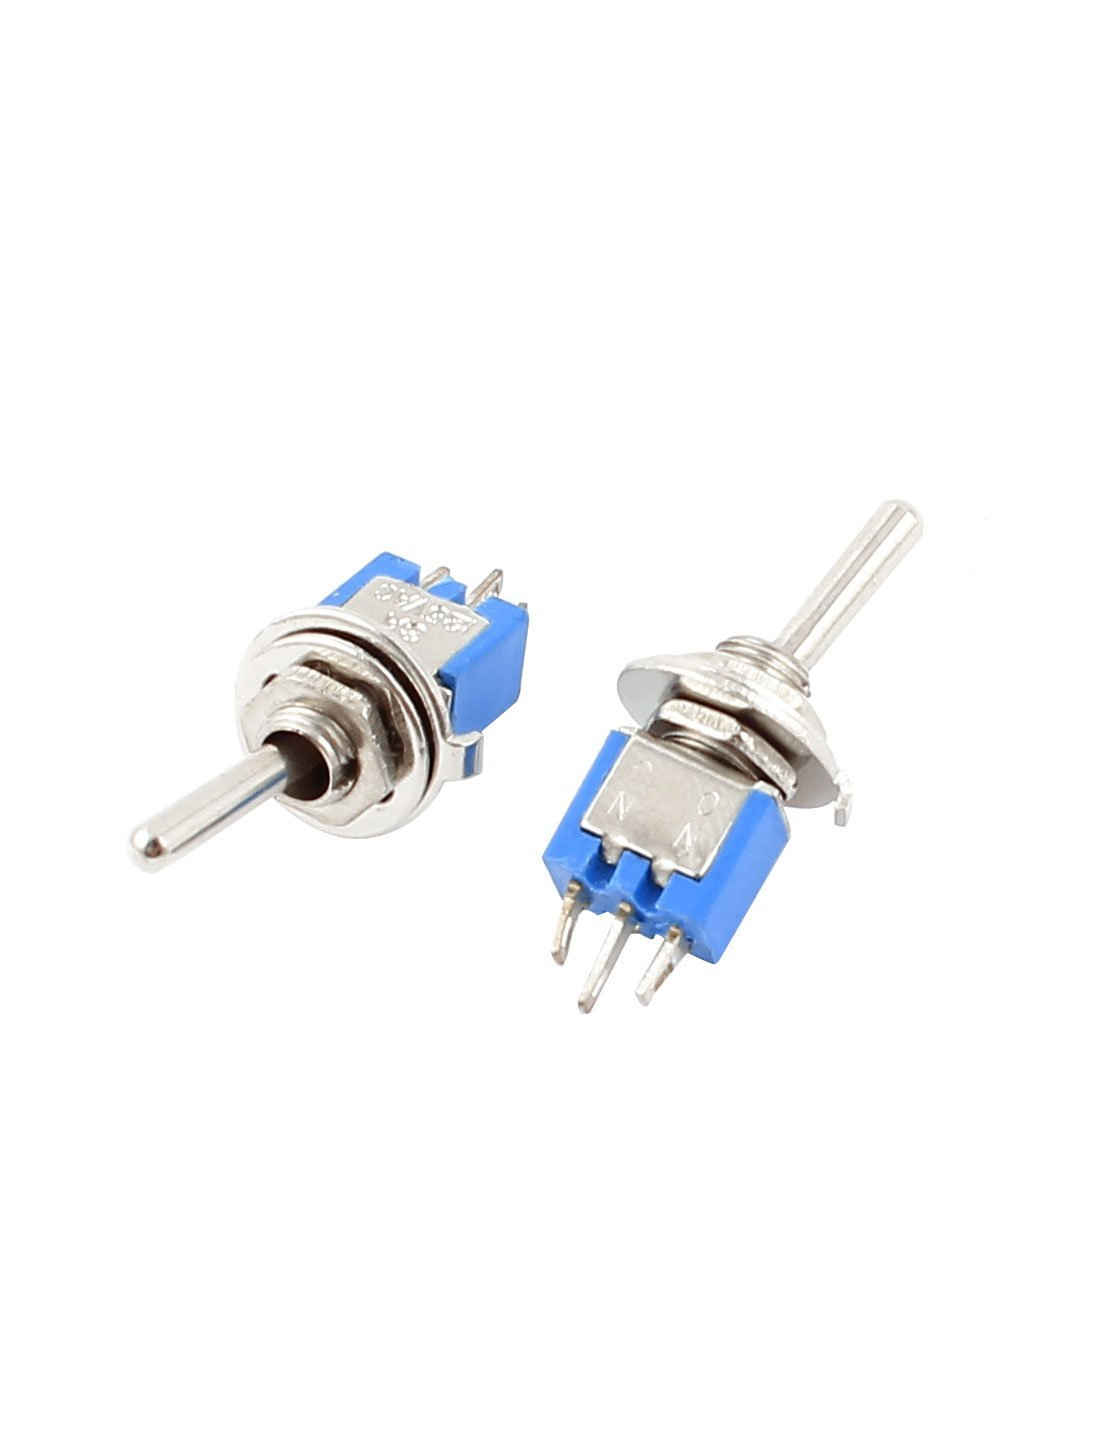 Panel Mount 9Pcs AC 125V 3A On-On SPDT Locking Toggle Switch 5 milímetros azul: Amazon.com: Industrial & Scientific